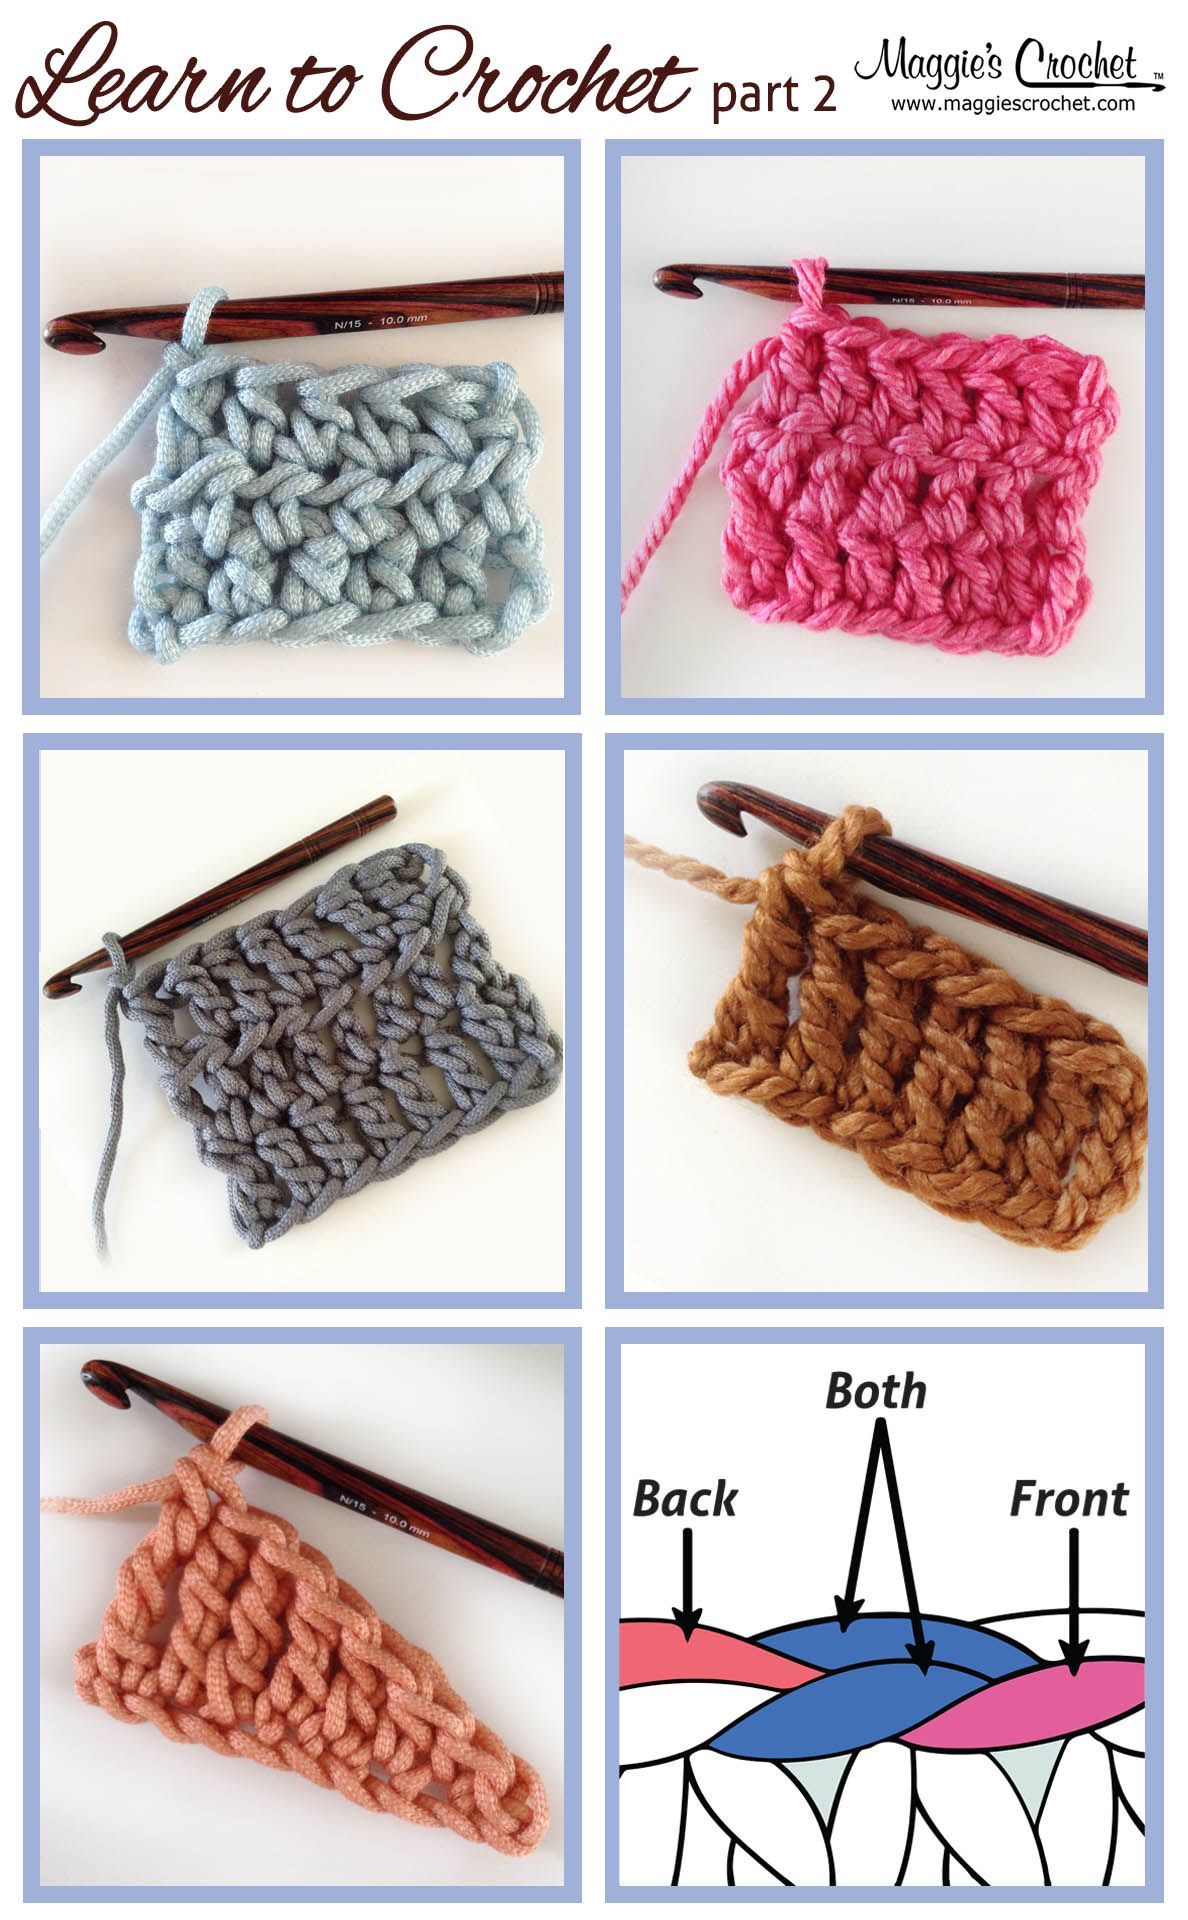 Learn to crochet part 2 crochet next steps tutorial y video right learn to crochet part 2 crochet next steps tutorial y video right and left hands bankloansurffo Image collections